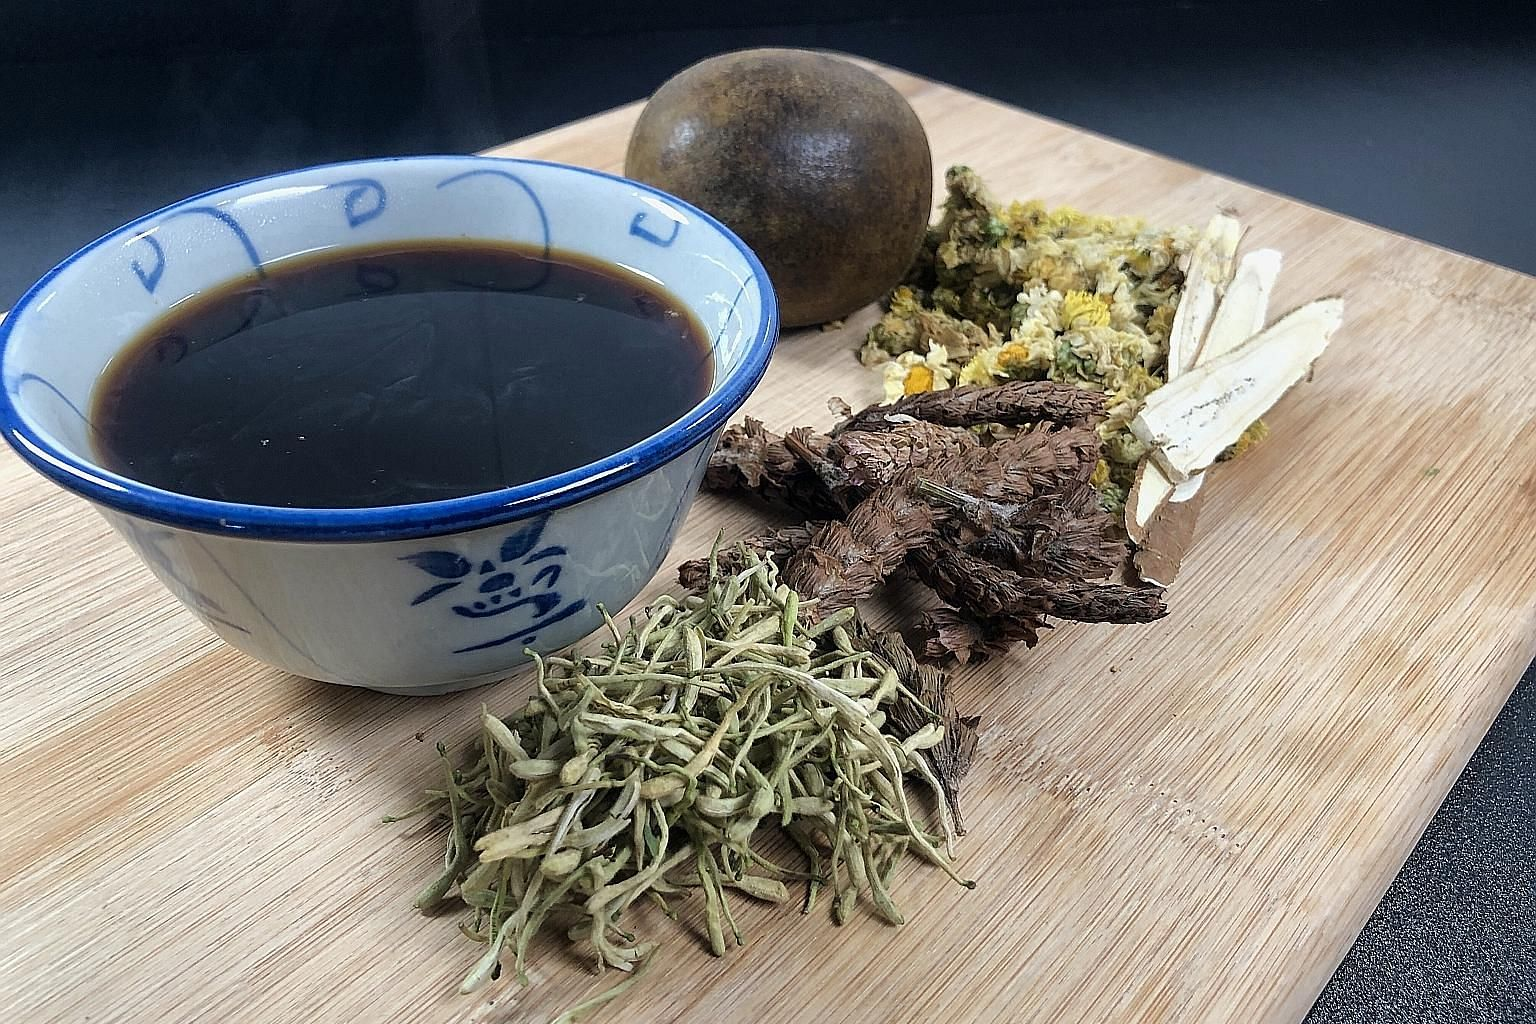 TCM practitioners recommend taking Detox And Immunity-boosting Tea (above) or Five Flower Tea twice a week, after meals.